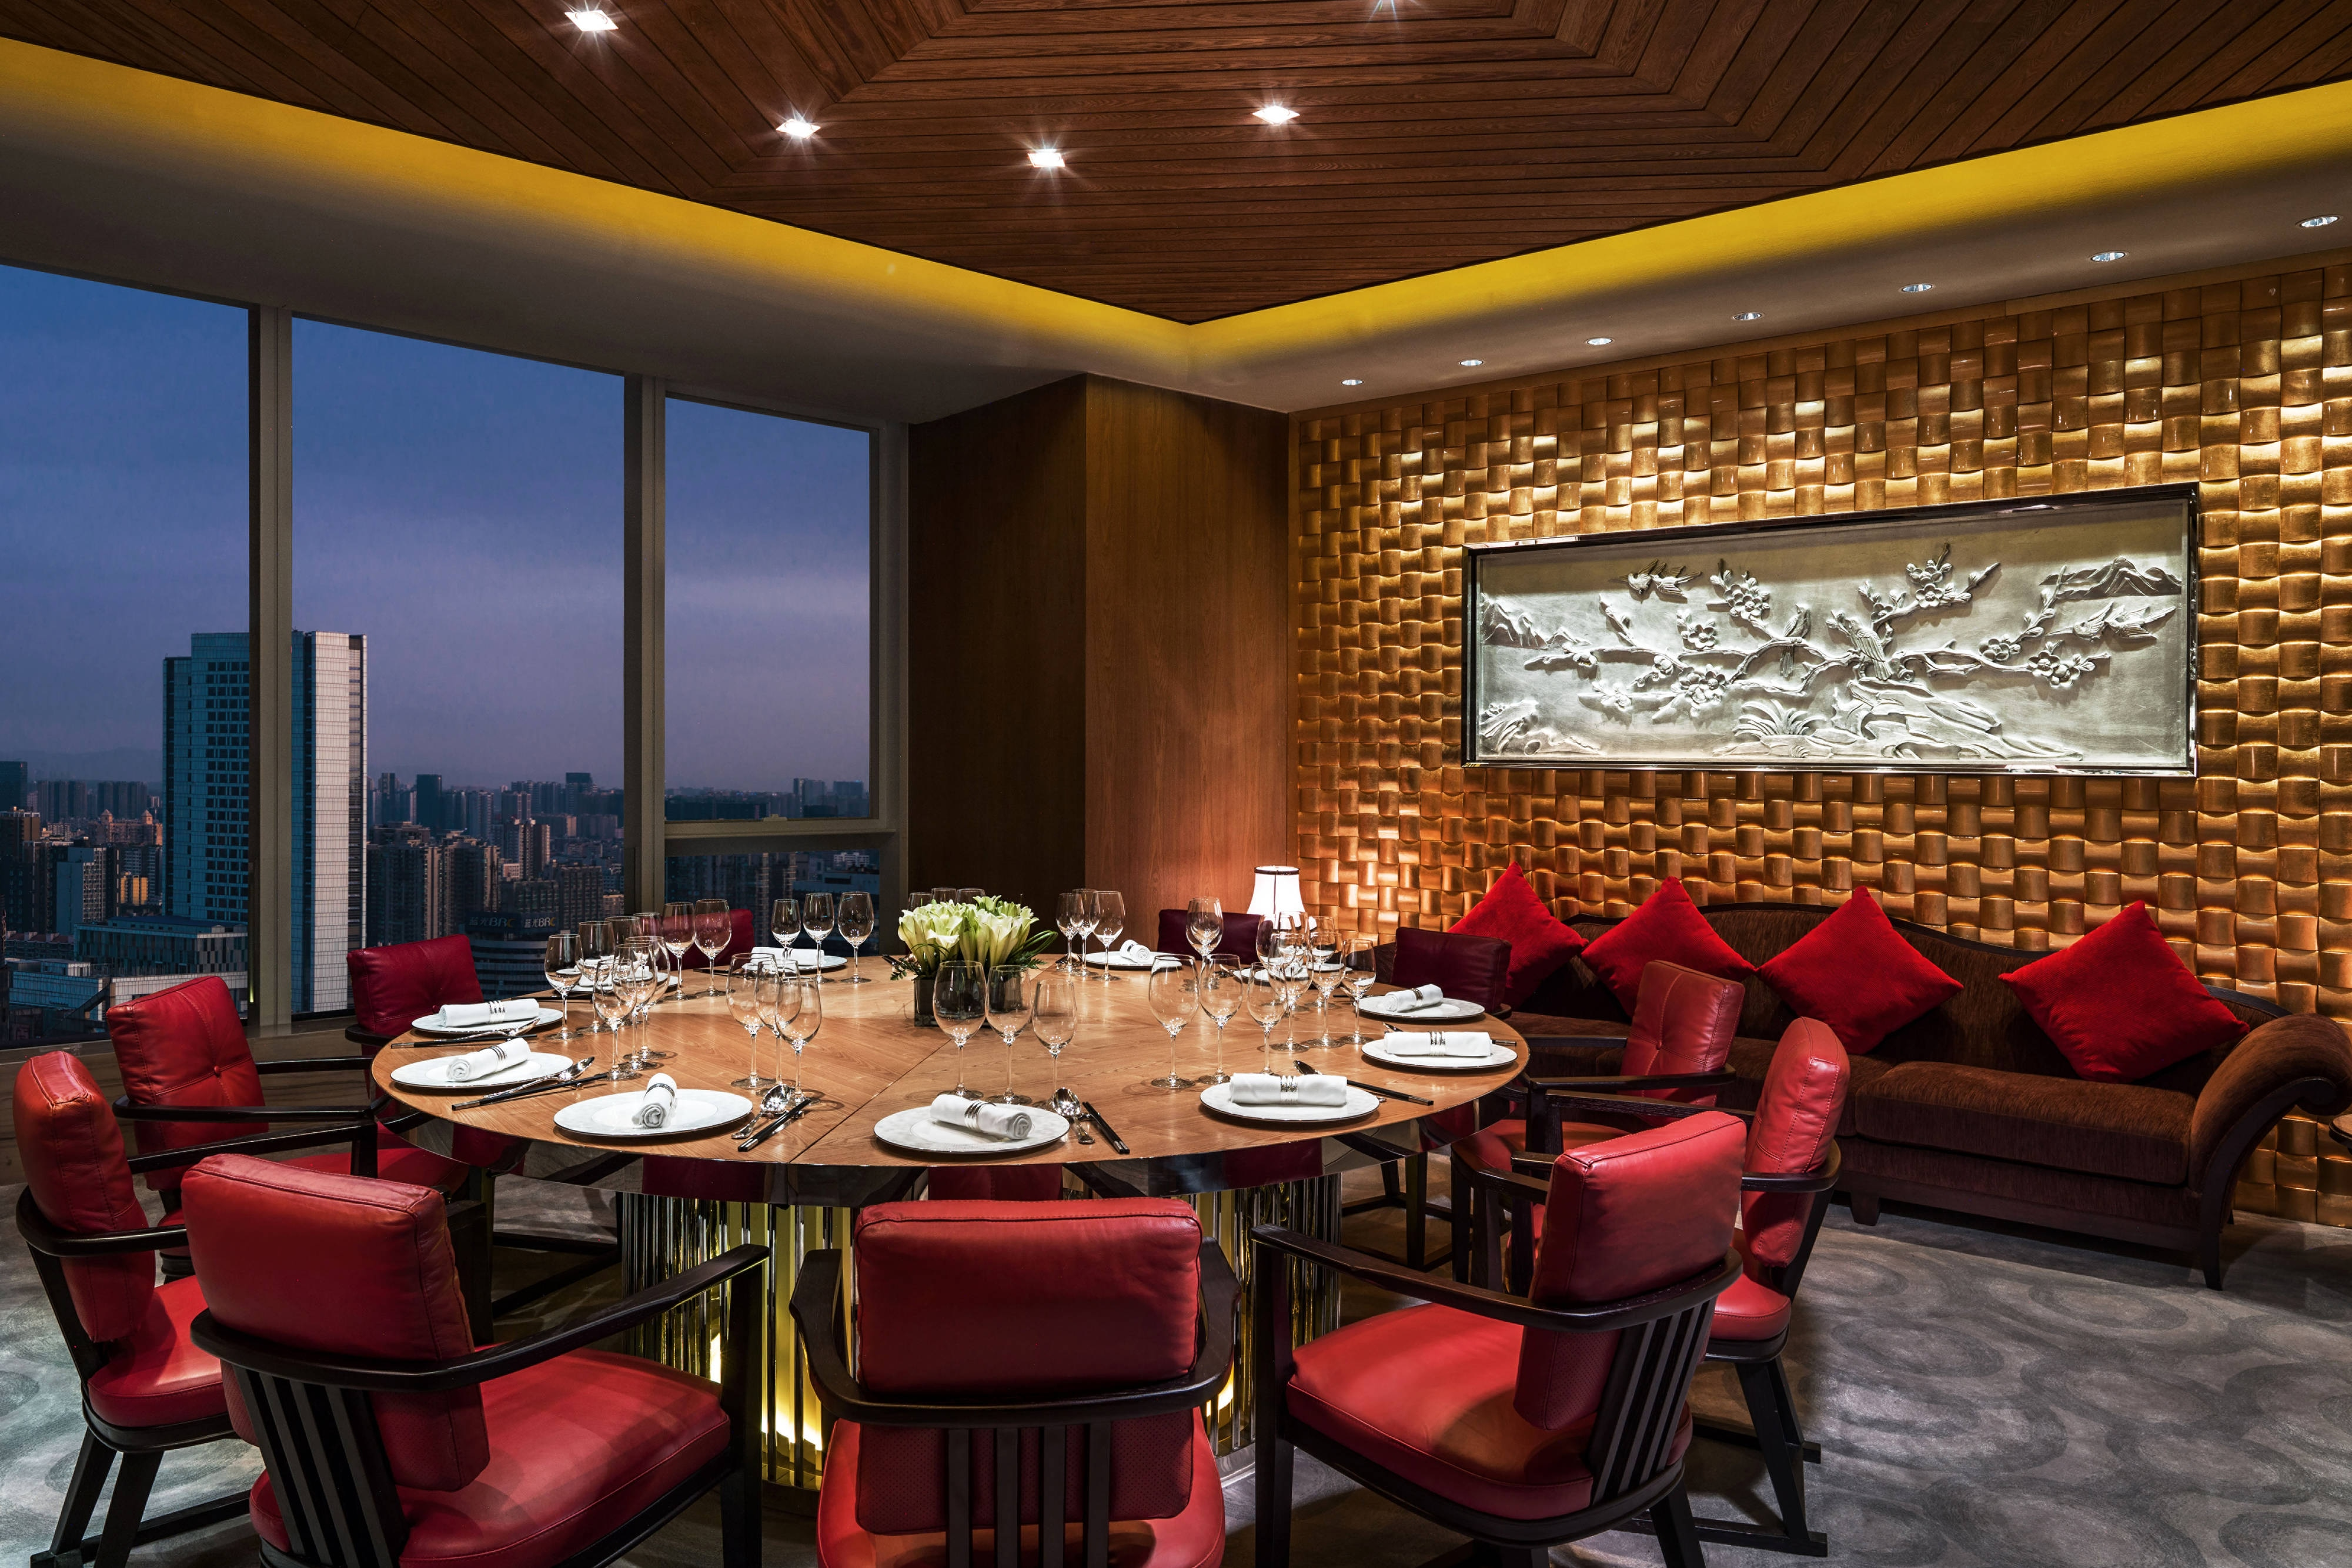 Yun Fu Private Dining Room - Qian Hu